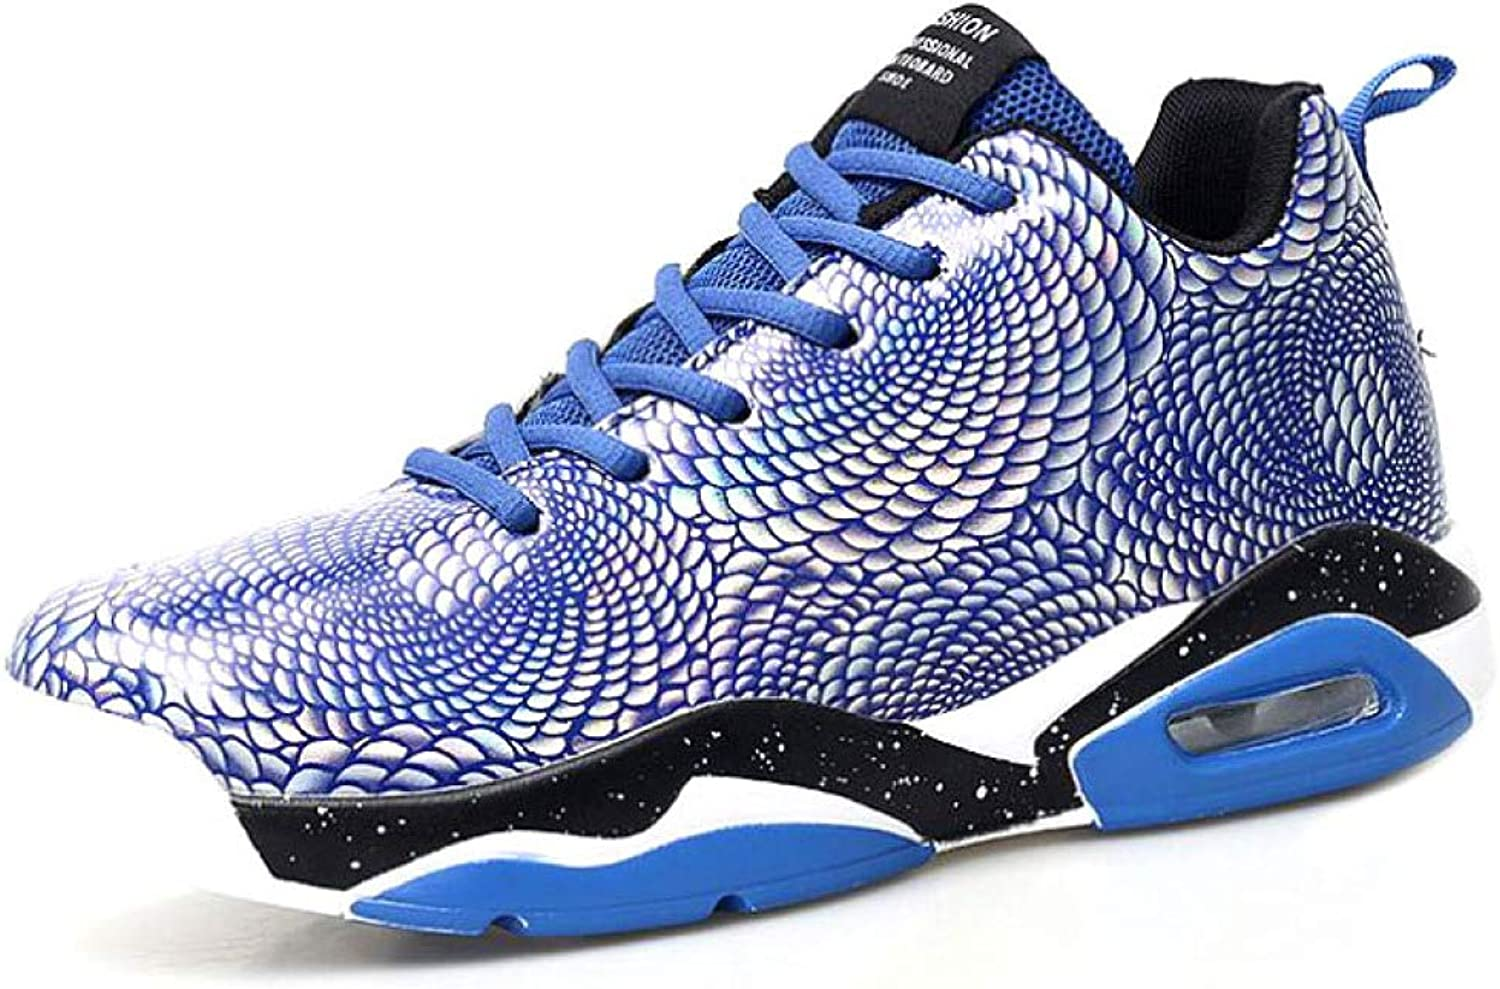 Sneakers Men's Running shoes Lightweight Trainers Gym shoes Athletic Casual Breathable Sports shoes